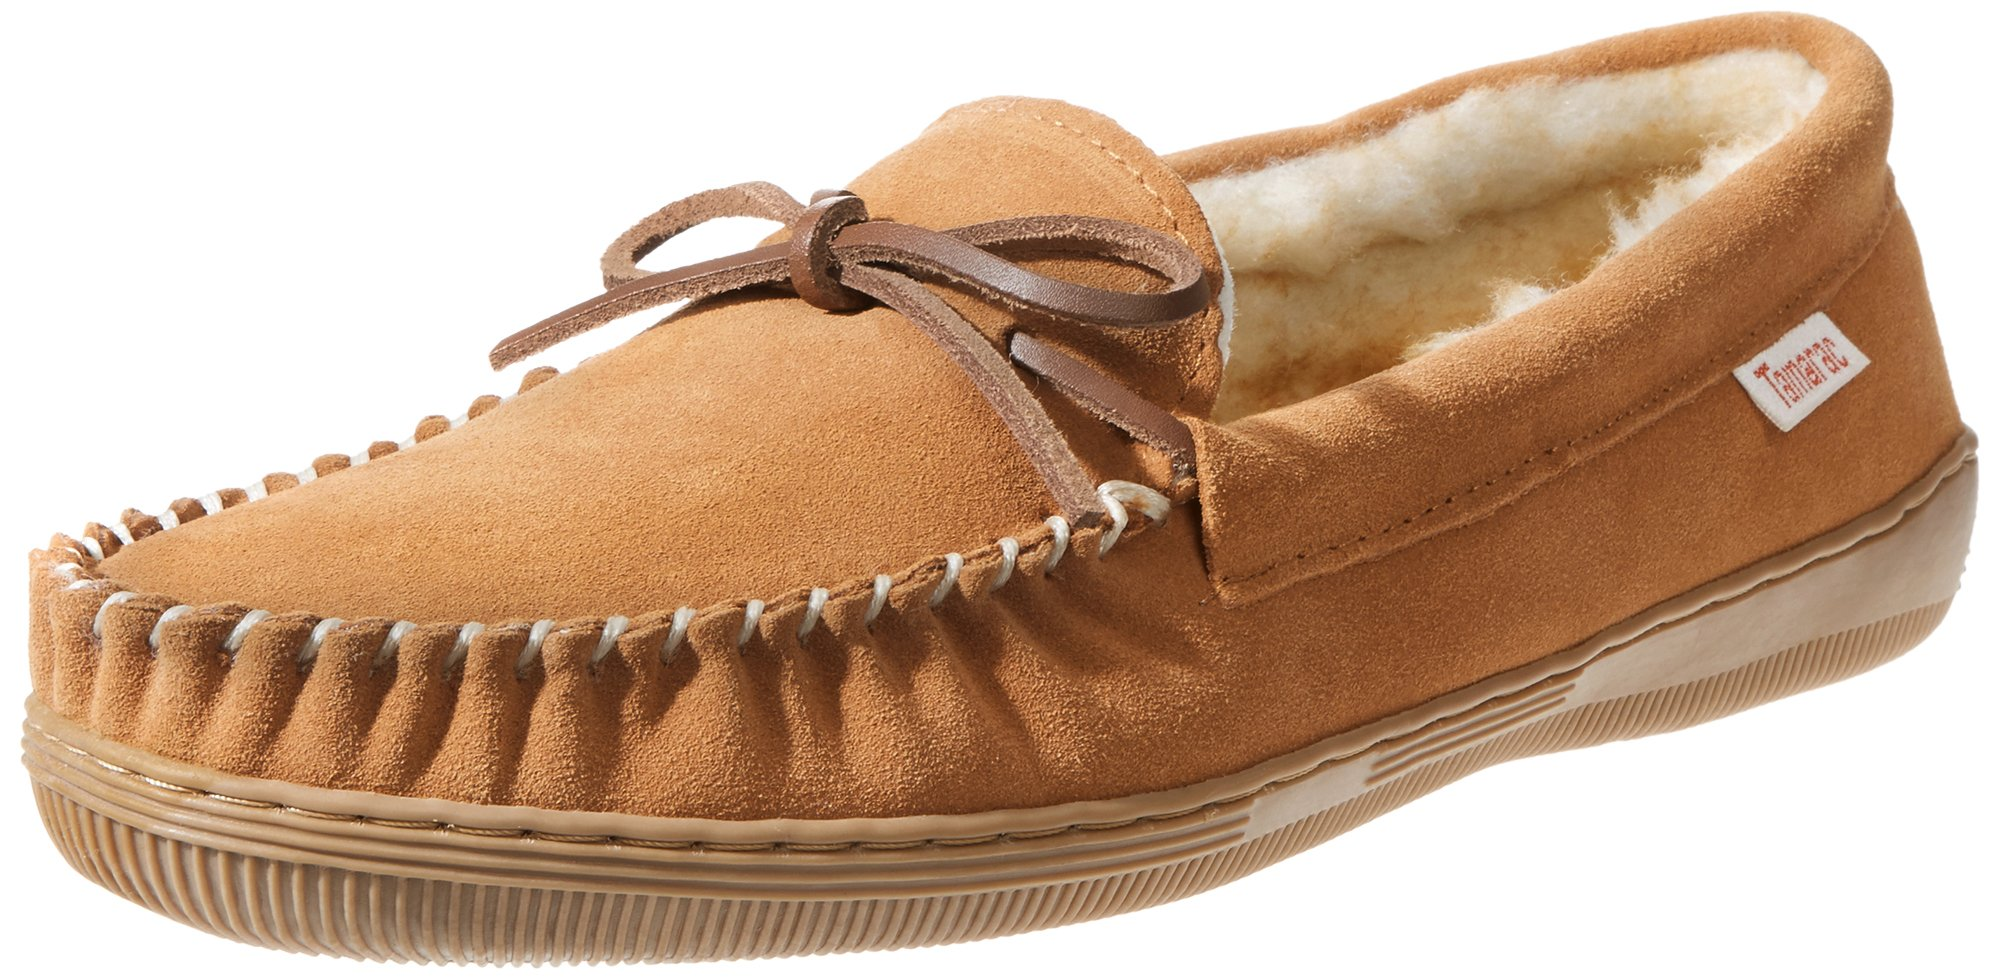 Tamarac by Slippers International 7161 Men's Camper Moccasin,Tan,10 M US by Tamarac by Slippers International